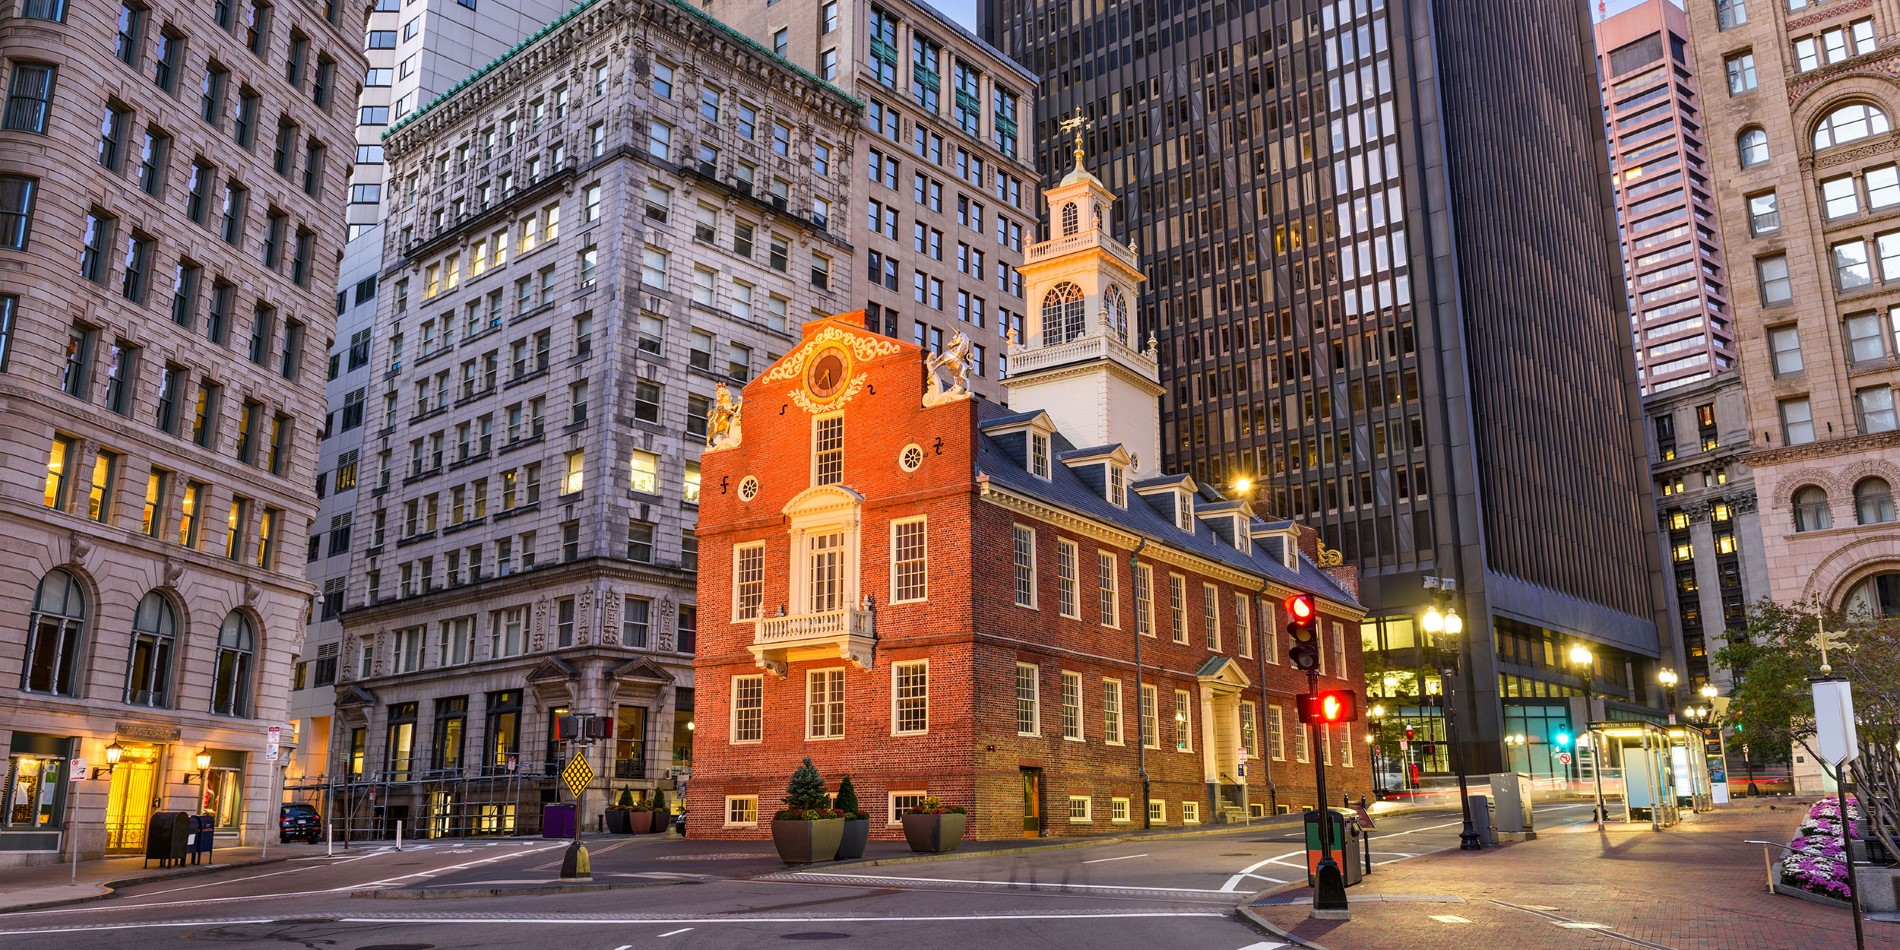 Visit the Old State House in downtown Boston.